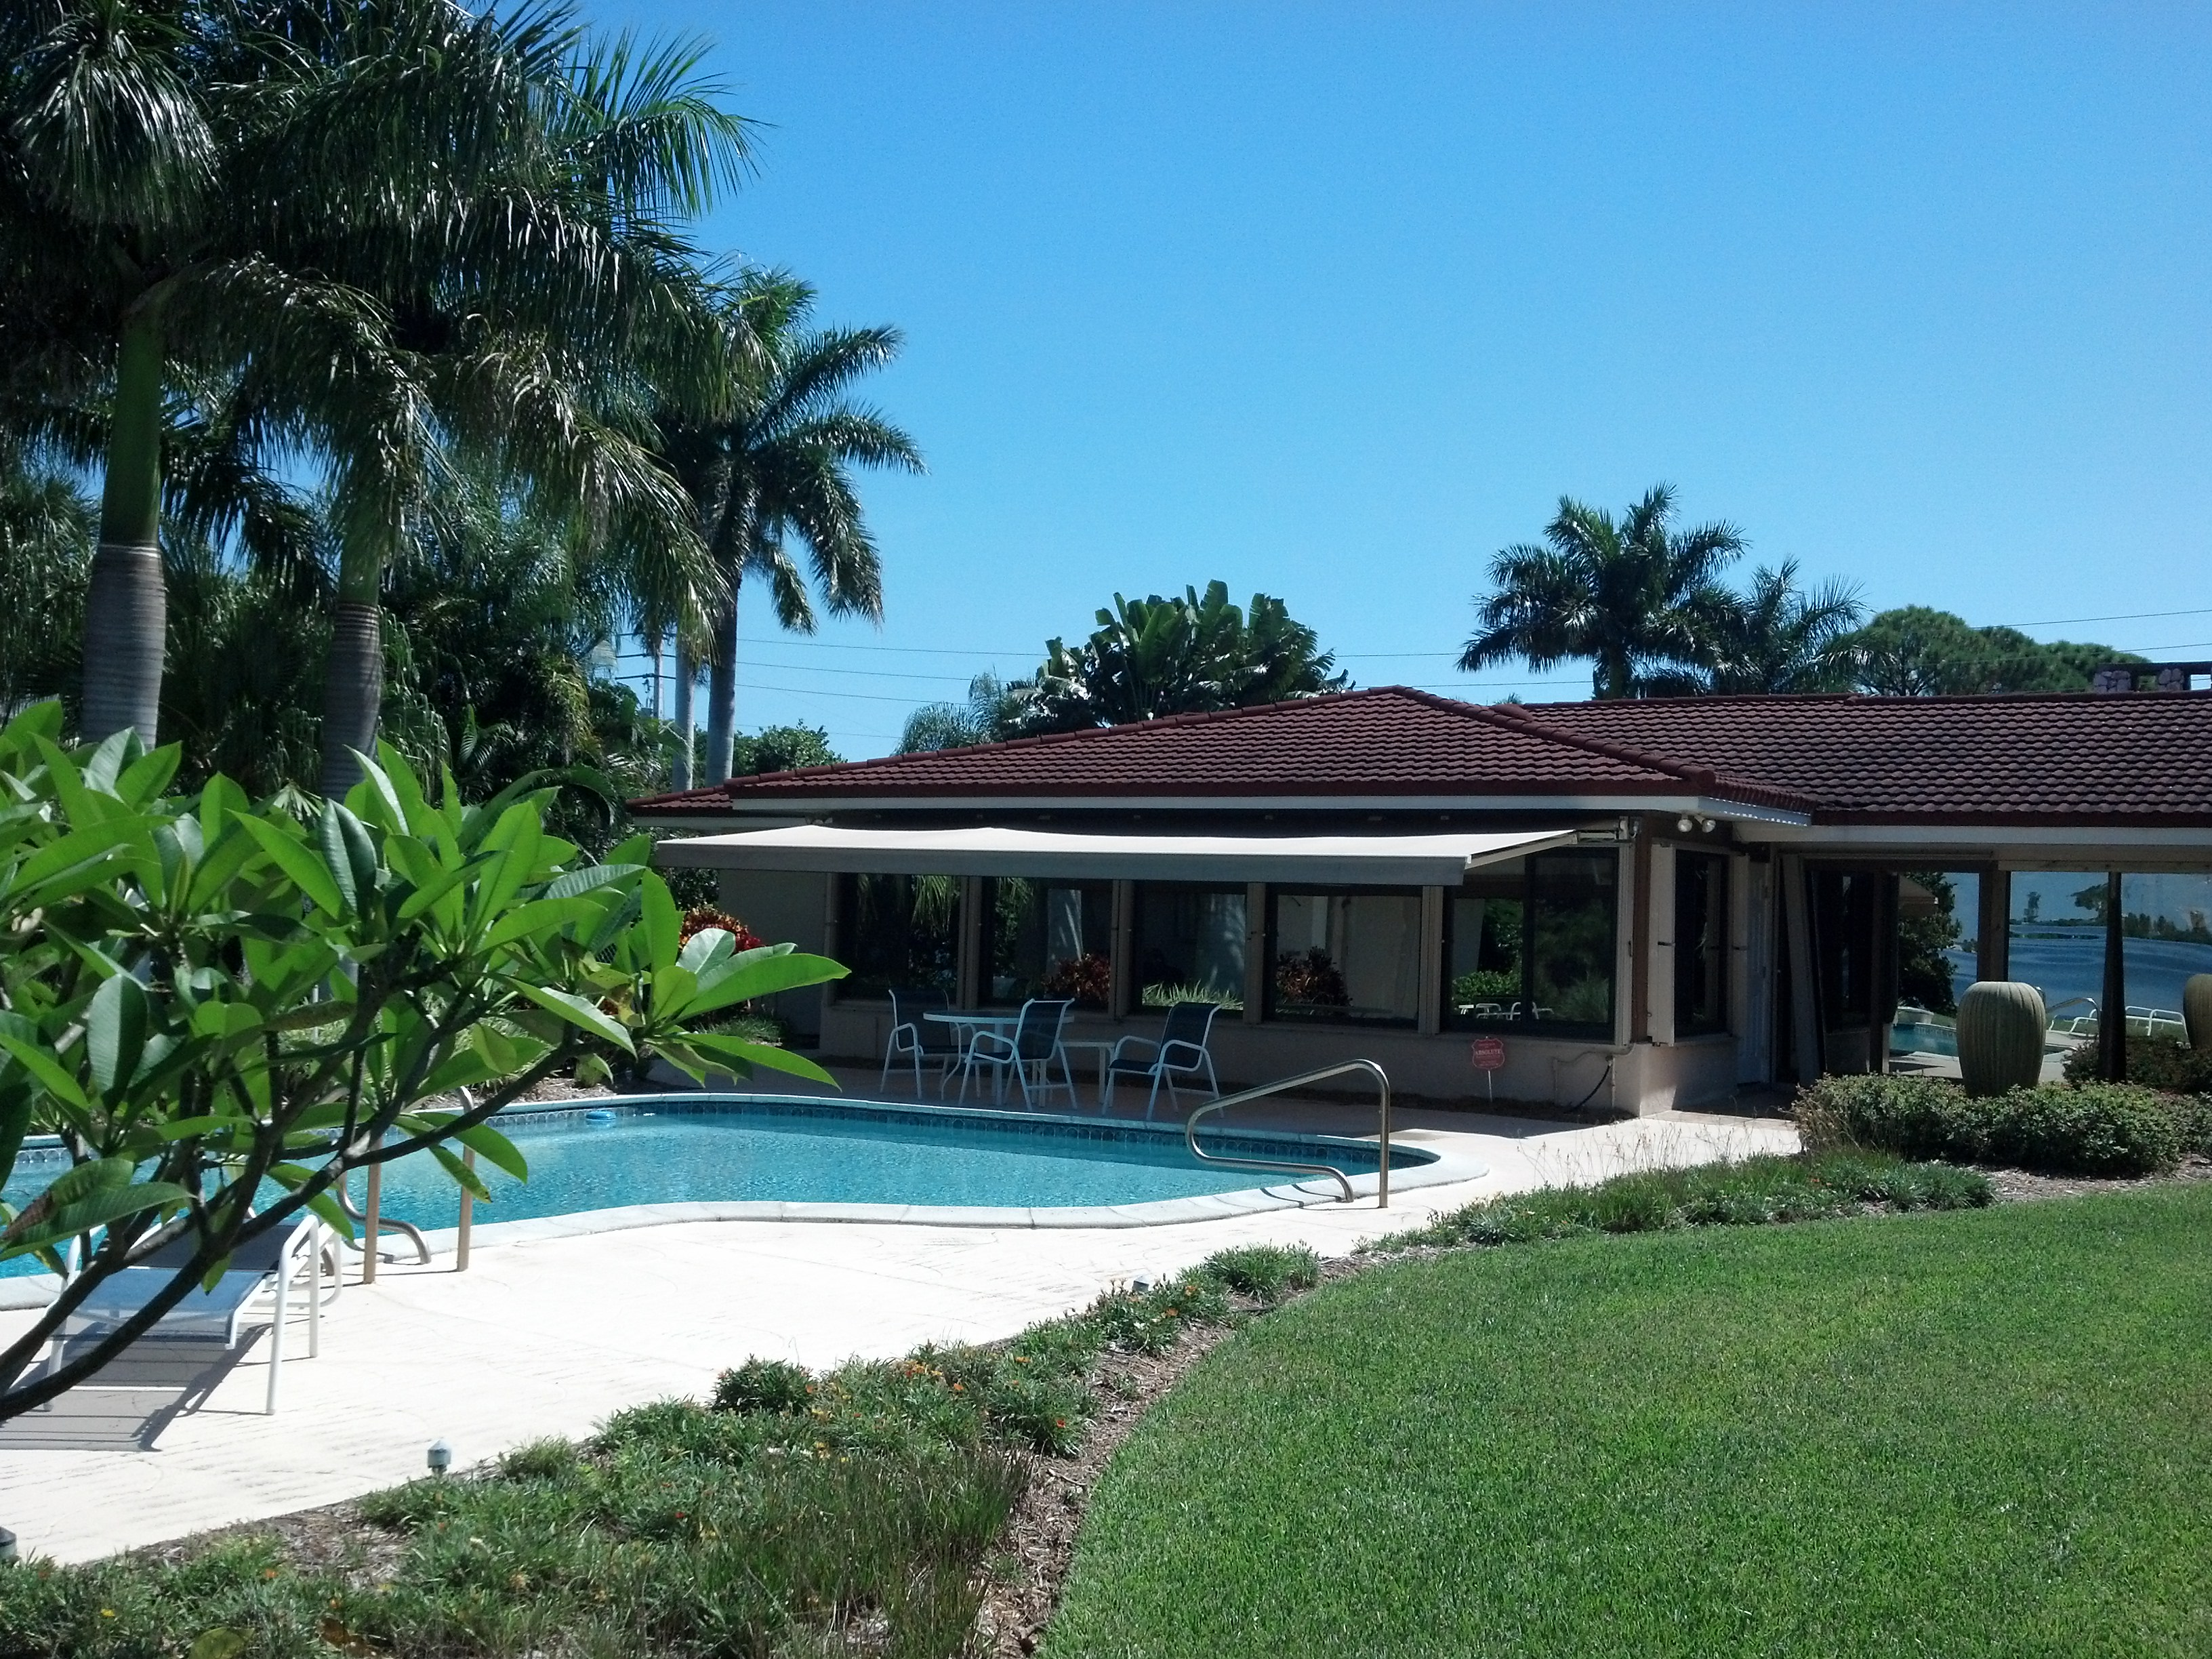 Retractable Awnings in Orlando | Shade & Privacy Products